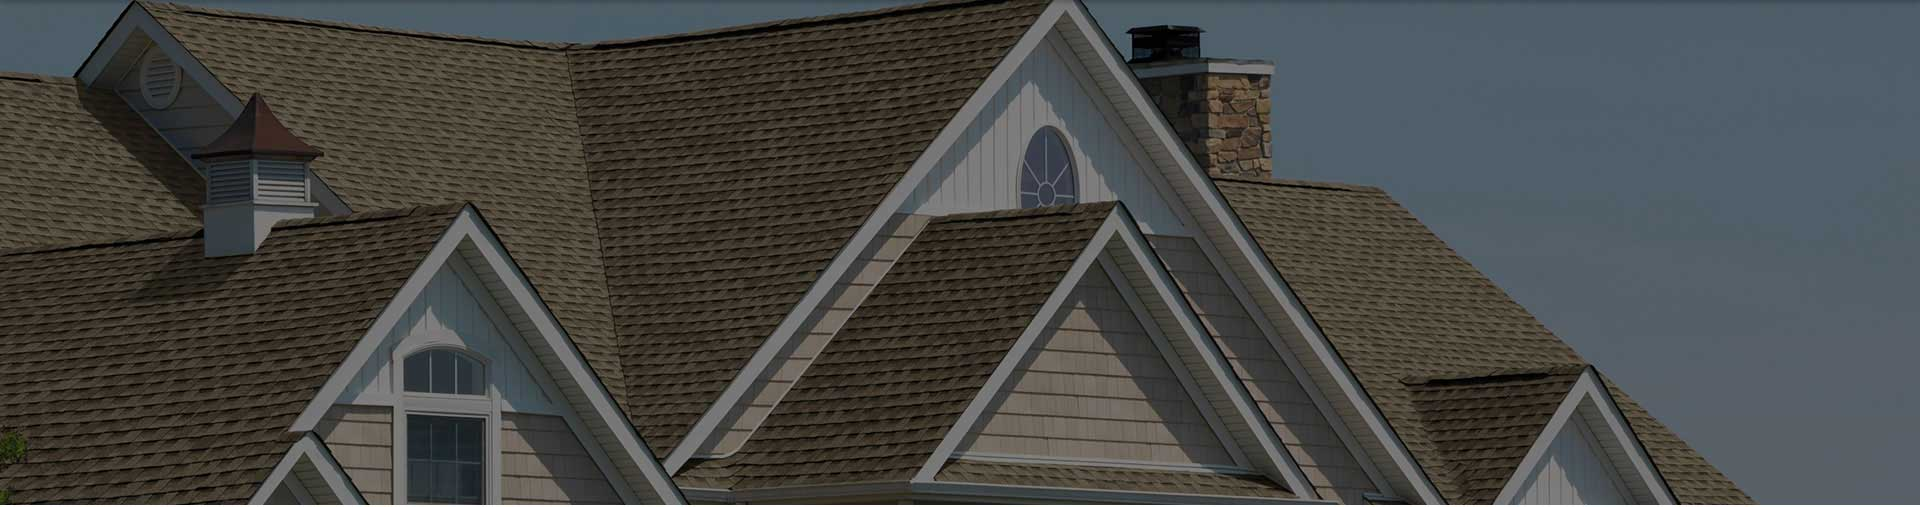 Residential Roof Repair Service